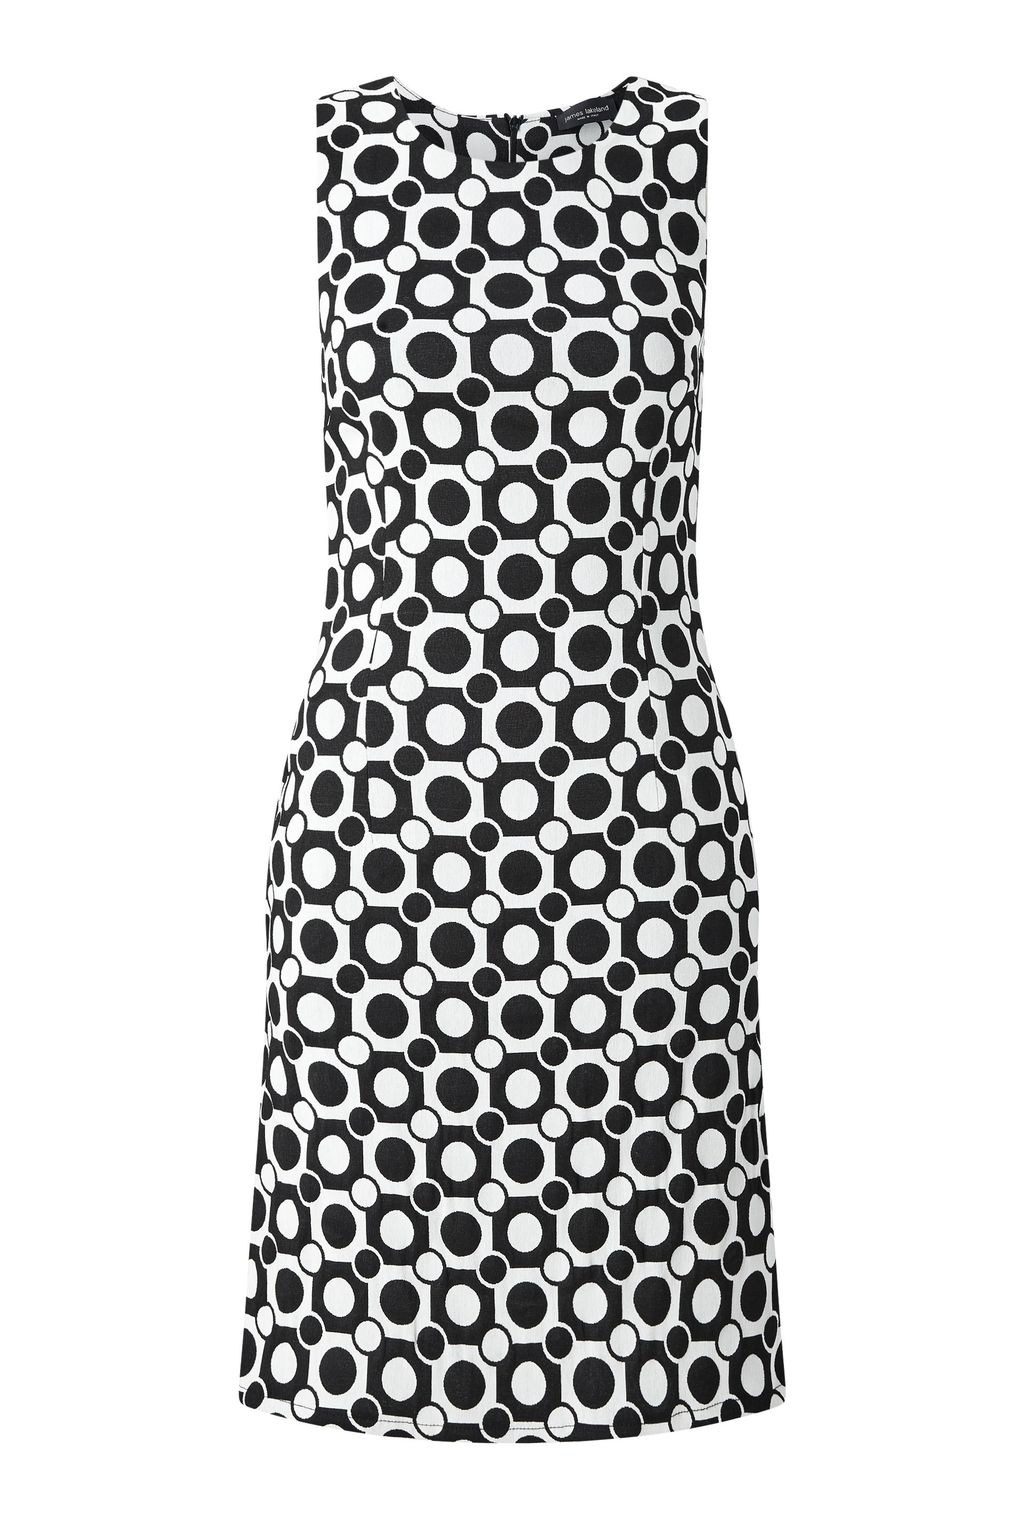 Diamond Jacquard Dress, White - style: shift; neckline: round neck; fit: tailored/fitted; sleeve style: sleeveless; predominant colour: white; secondary colour: navy; occasions: evening, creative work; length: just above the knee; fibres: polyester/polyamide - stretch; sleeve length: sleeveless; texture group: crepes; pattern type: fabric; pattern size: big & busy; pattern: patterned/print; season: s/s 2016; wardrobe: highlight